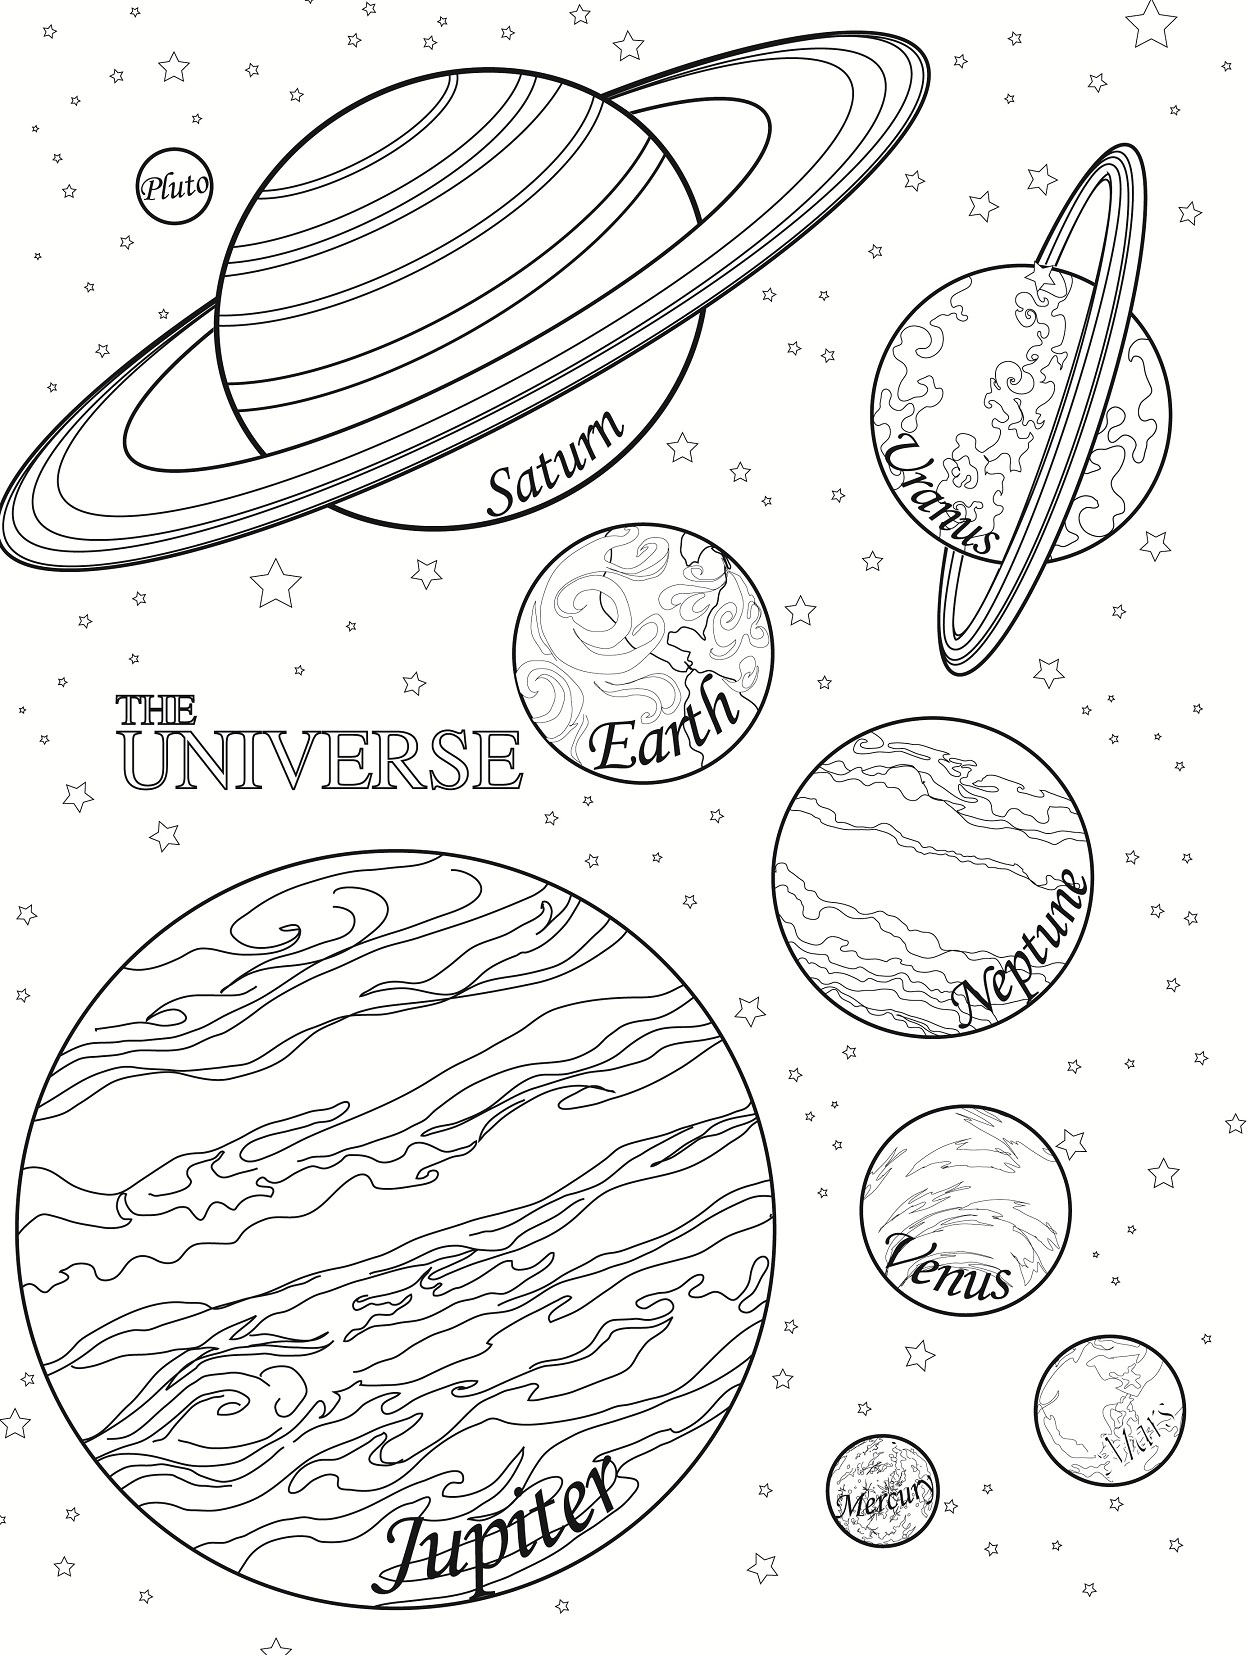 Planet Earth Coloring Page Printable (page 4) - Pics about ...